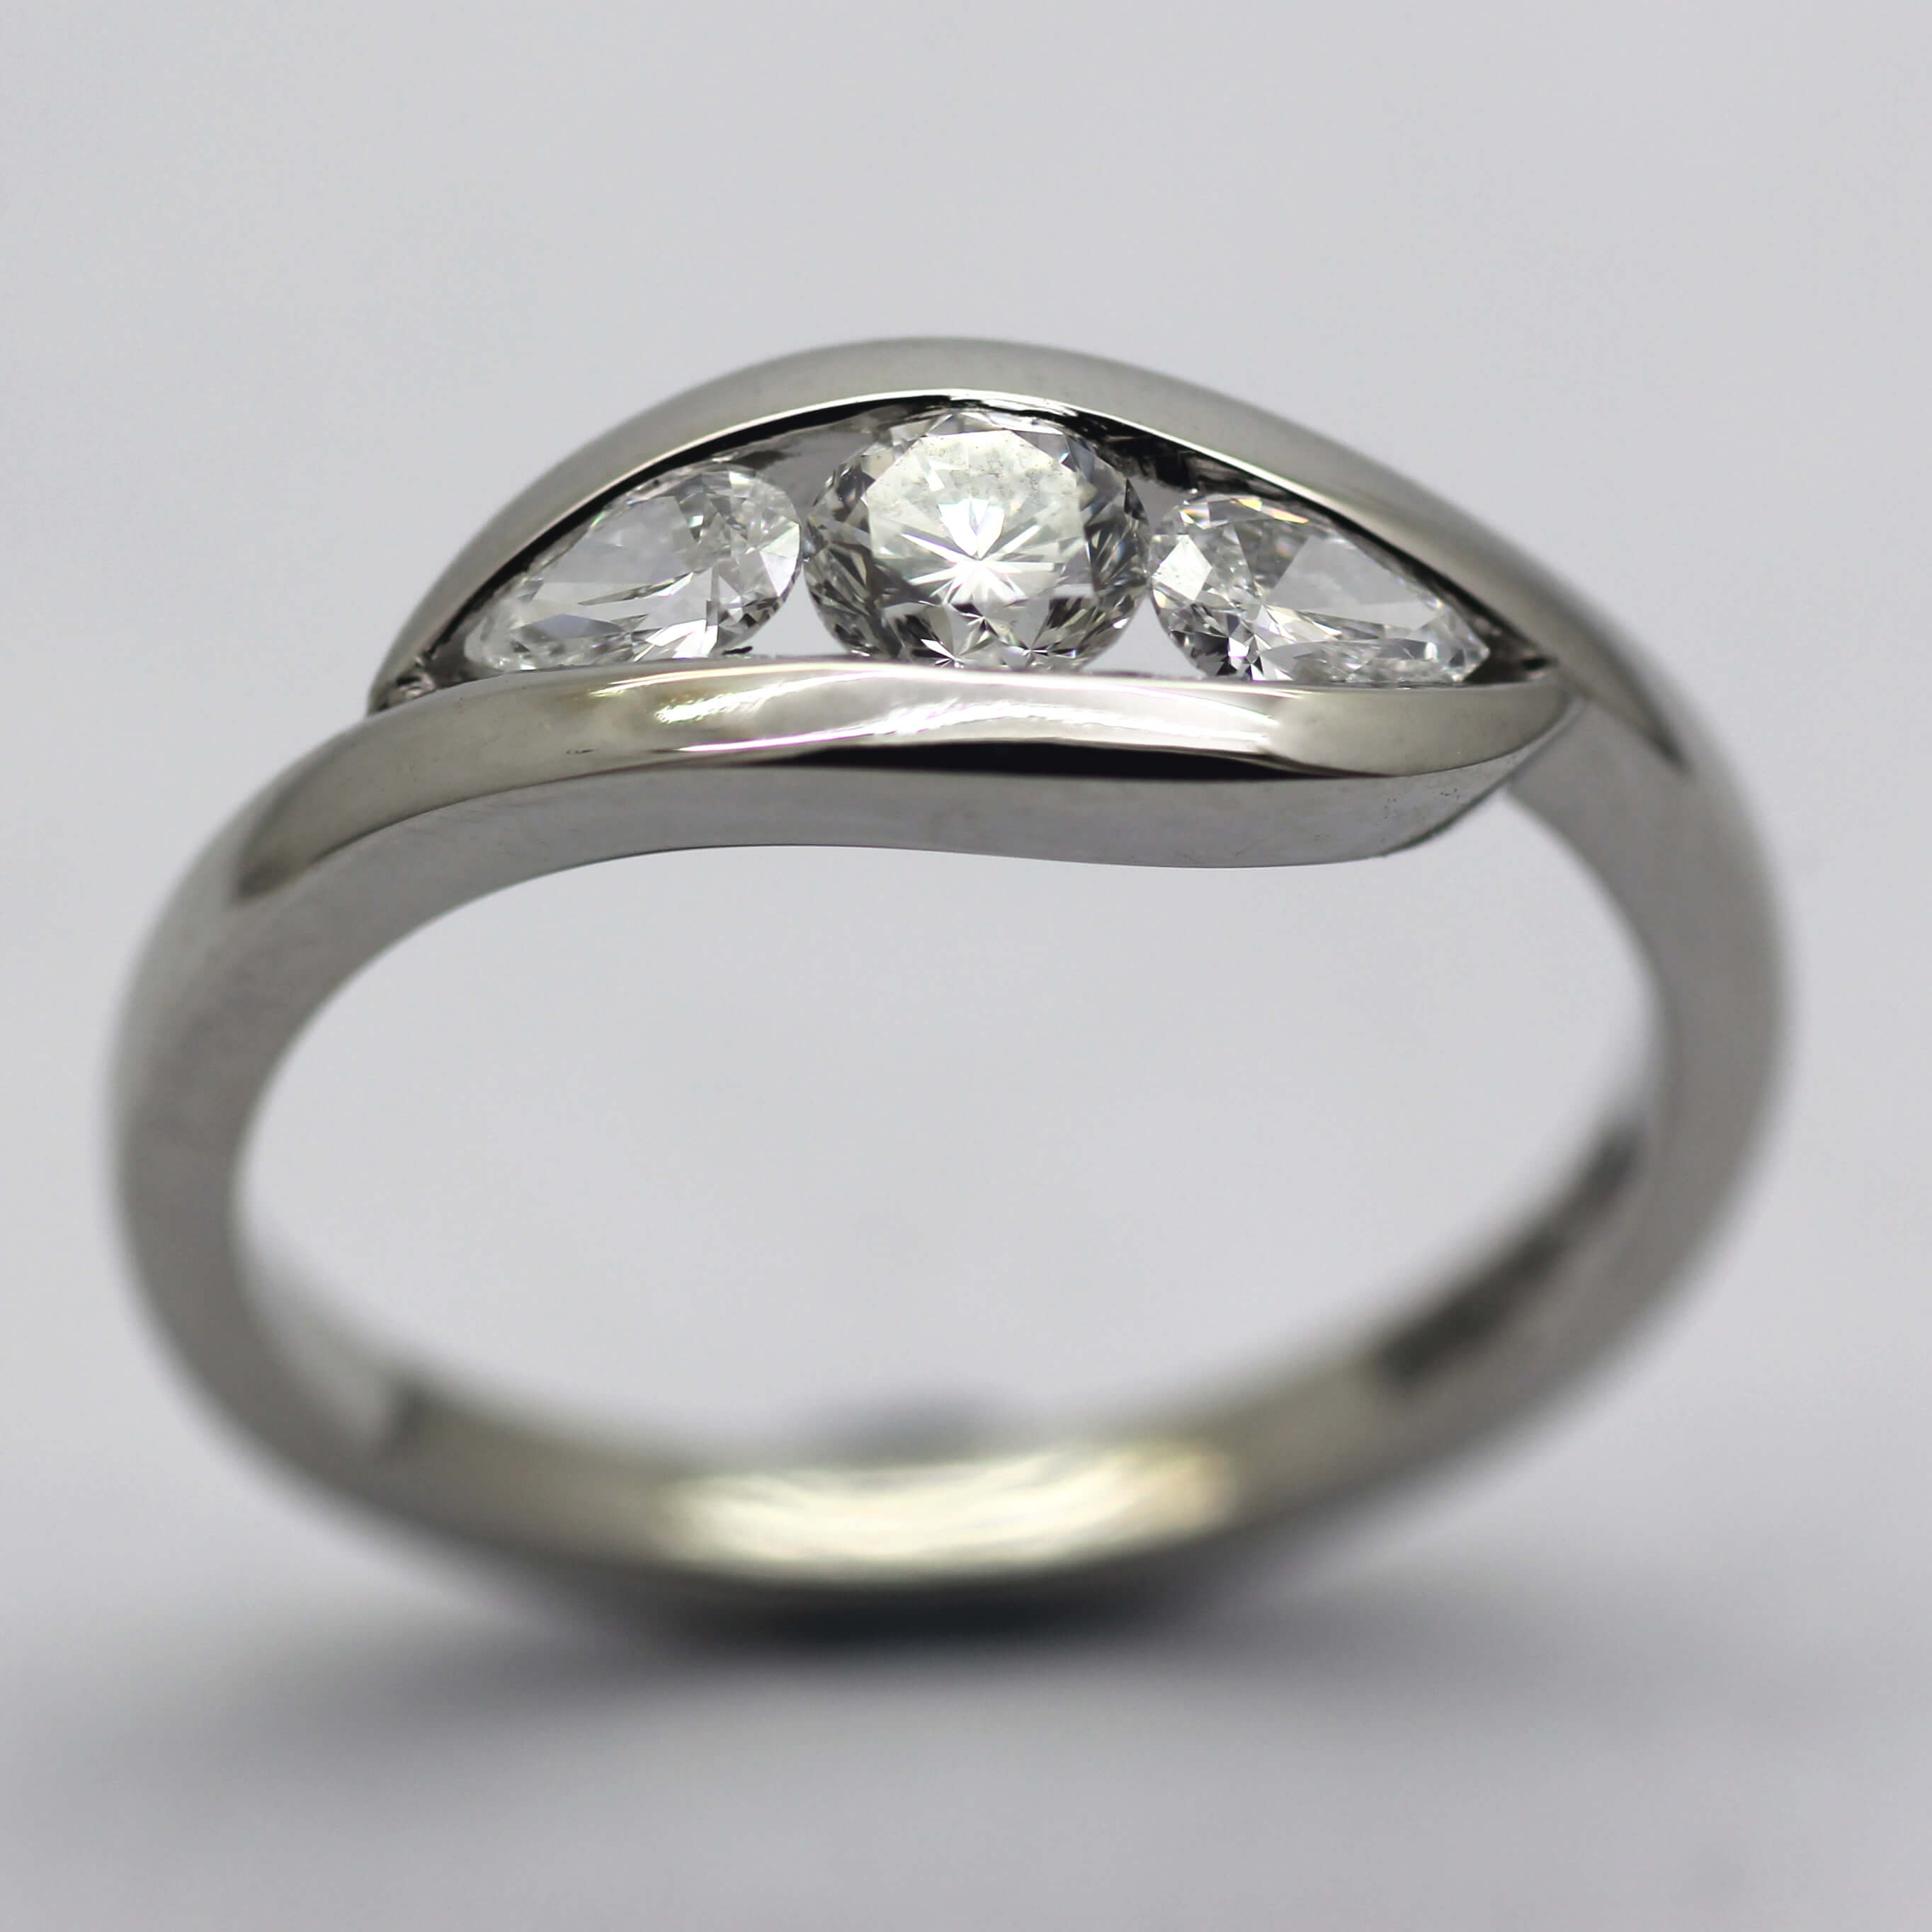 Bespoke handmade modern Diamond and Platinum engagement ring by Julian Stephens Goldsmith